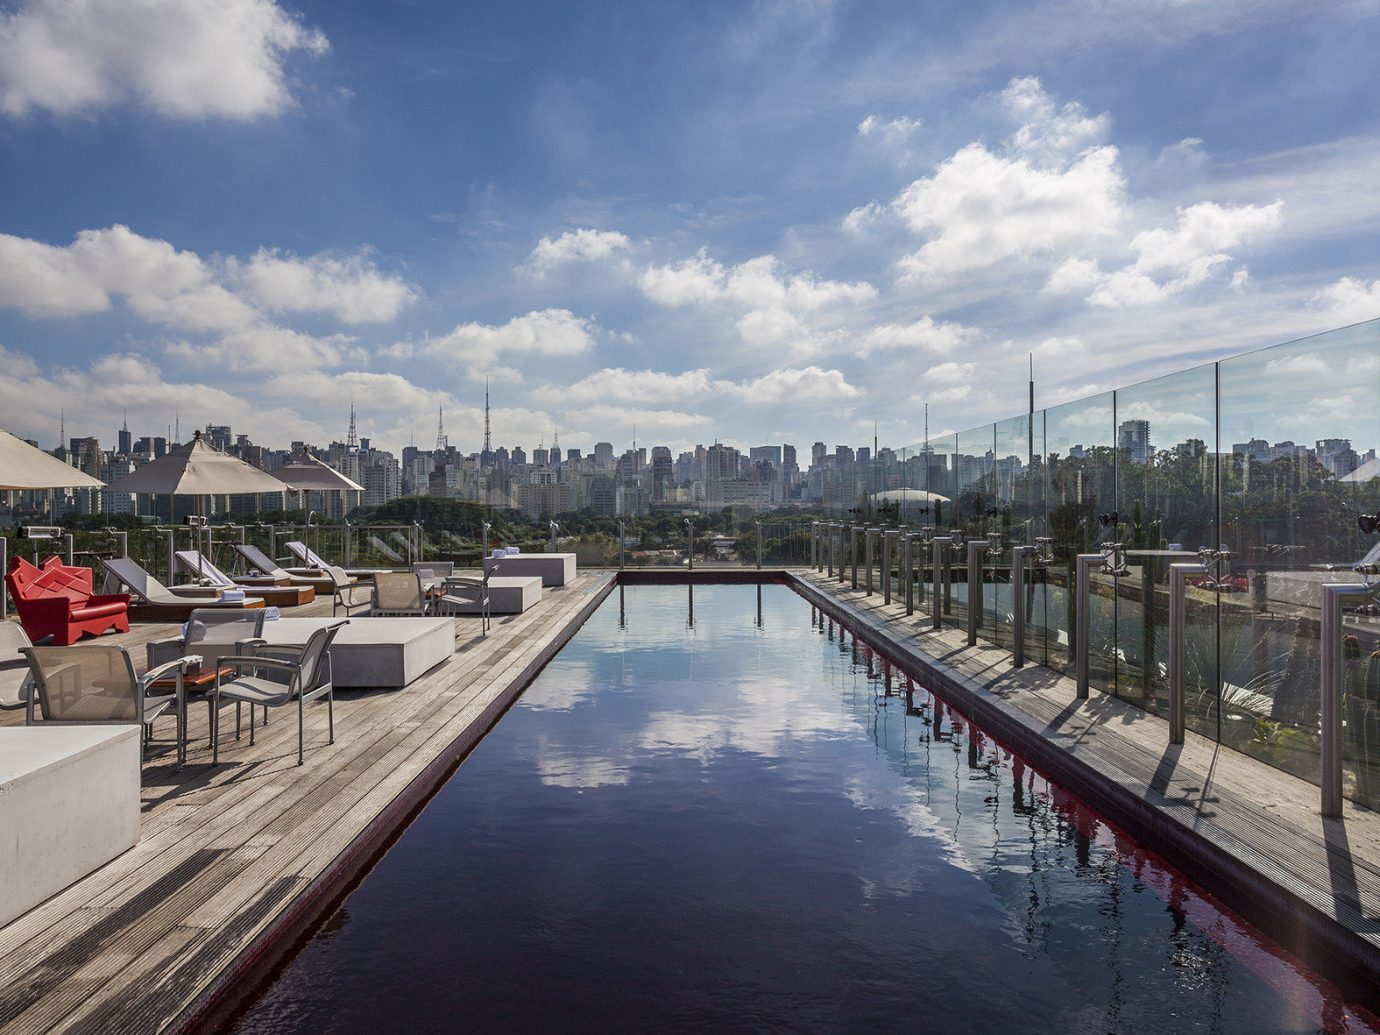 Hotels sky outdoor waterway water reflection residential area real estate City daytime cloud marina condominium building tree dock roof long day several